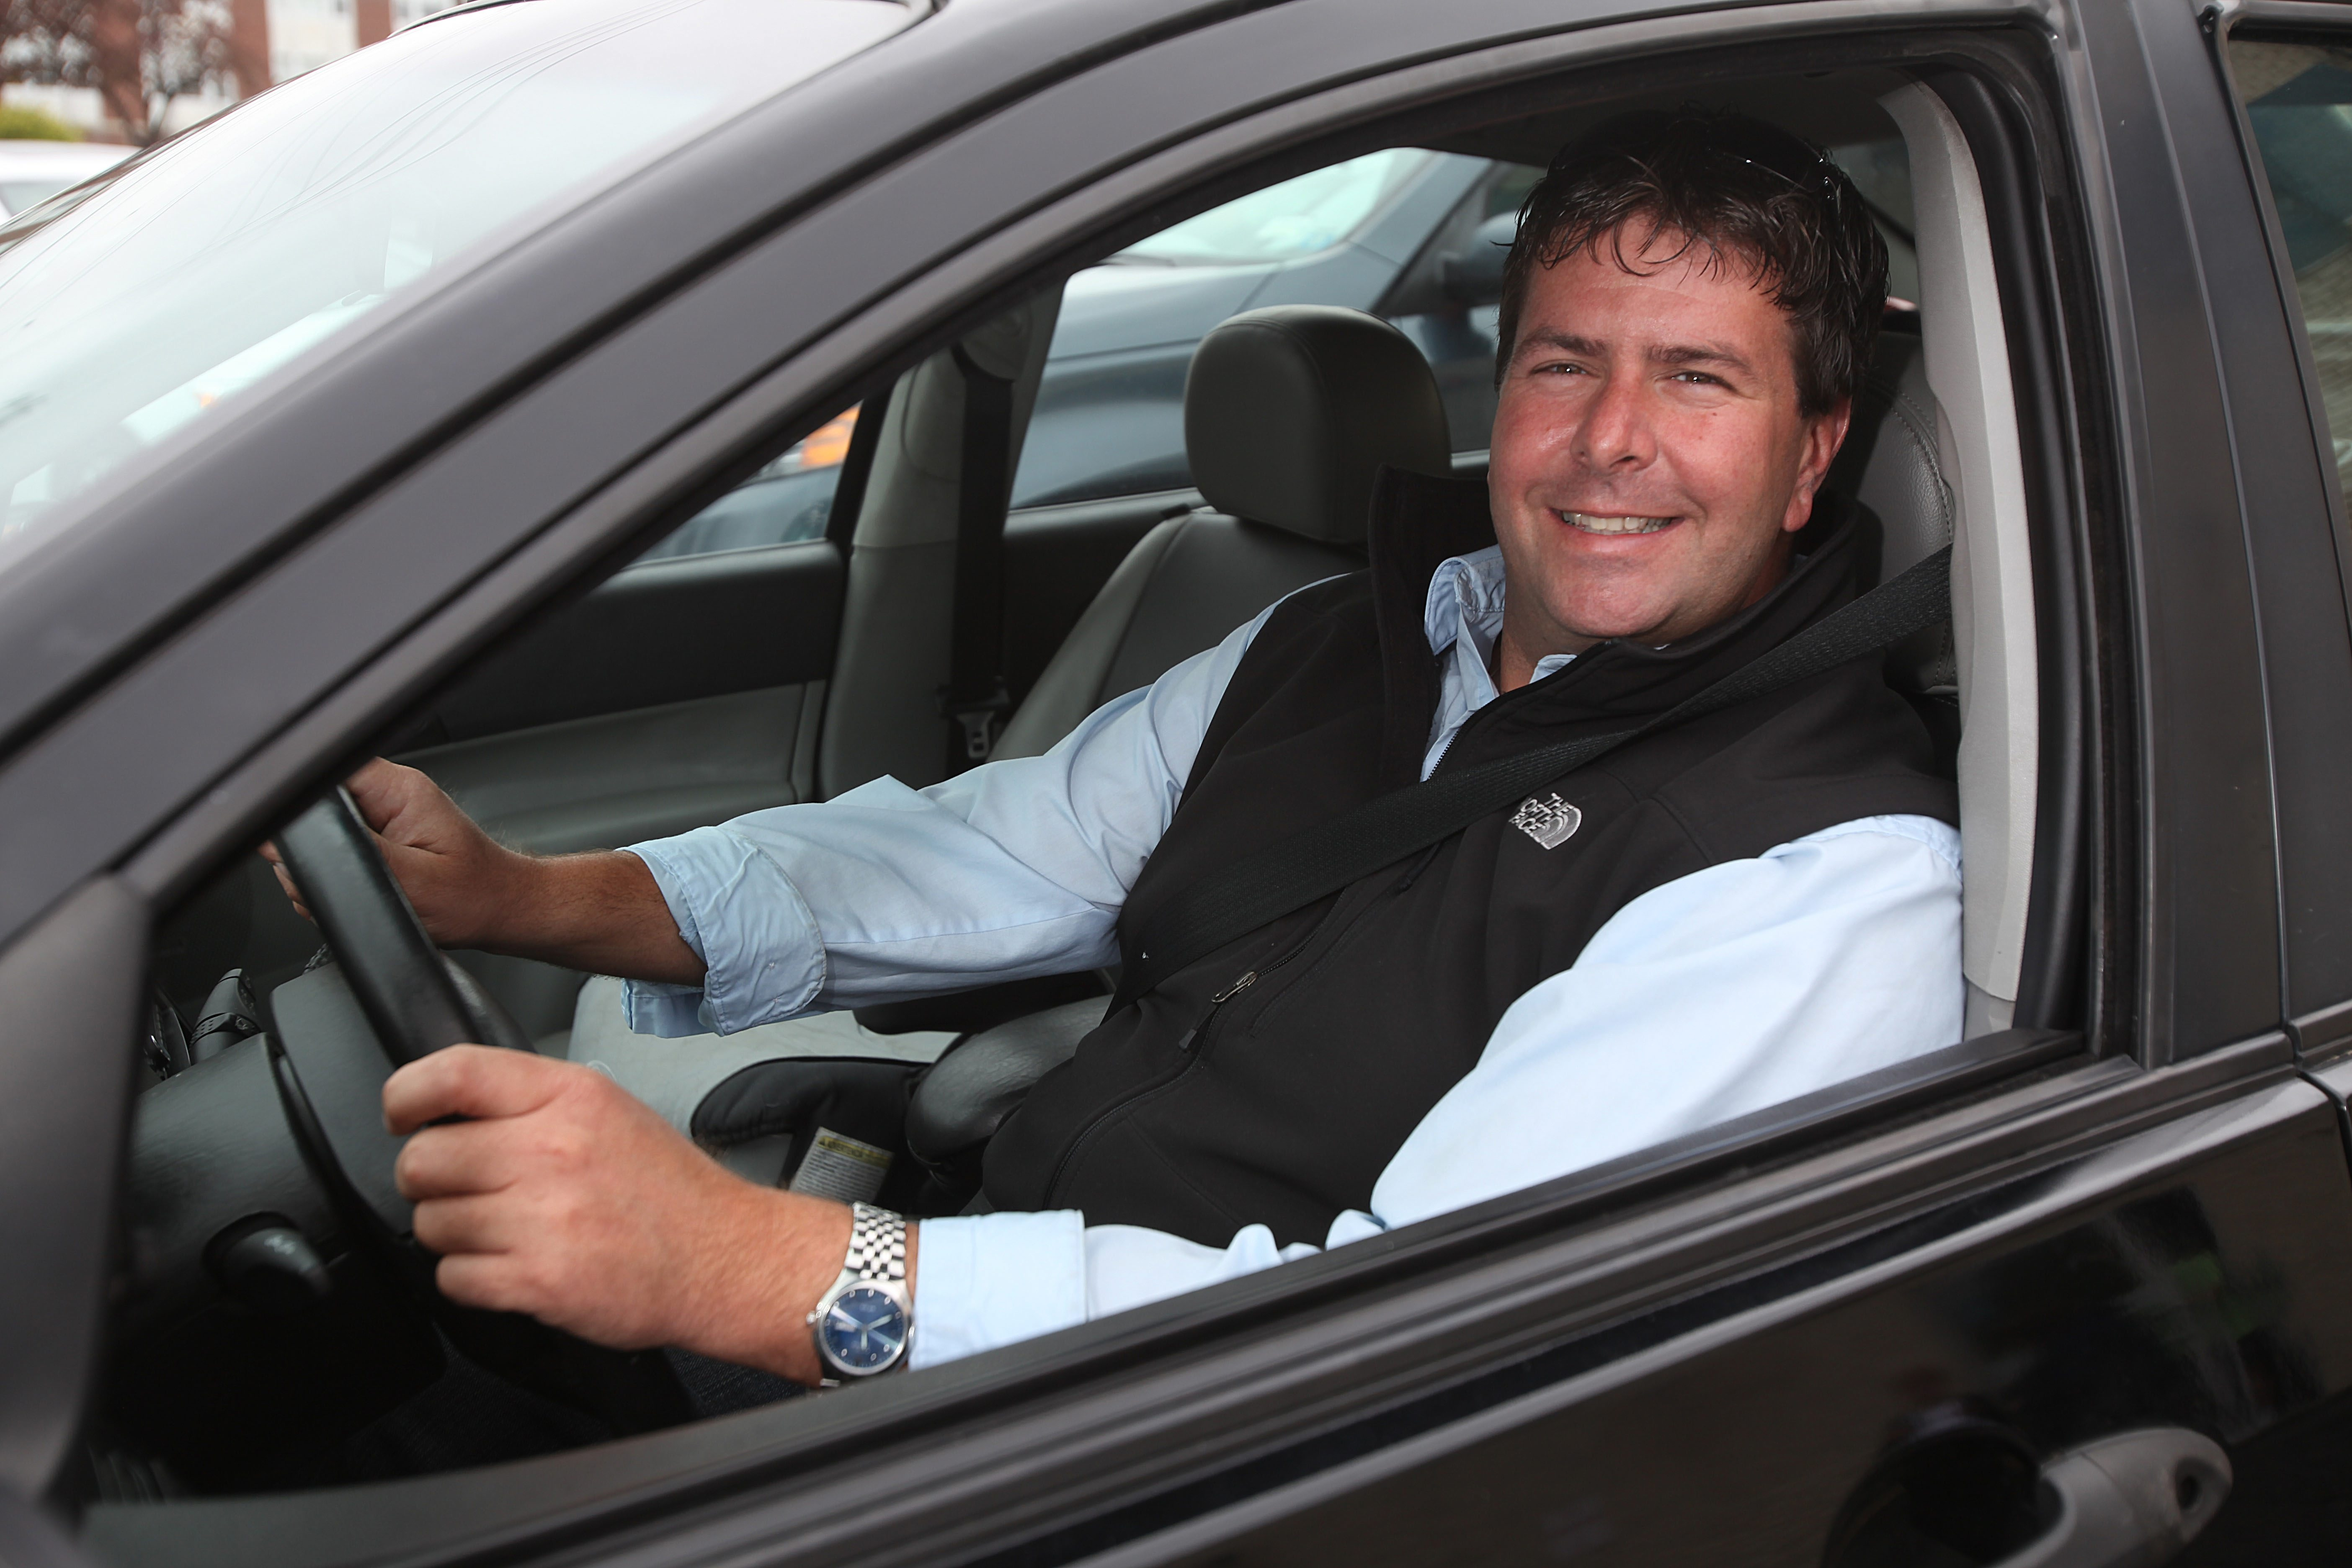 Christopher Duquin was interviewed by The Buffalo News in 2012 for a feature story on Stevens Driving School. (News file photo)